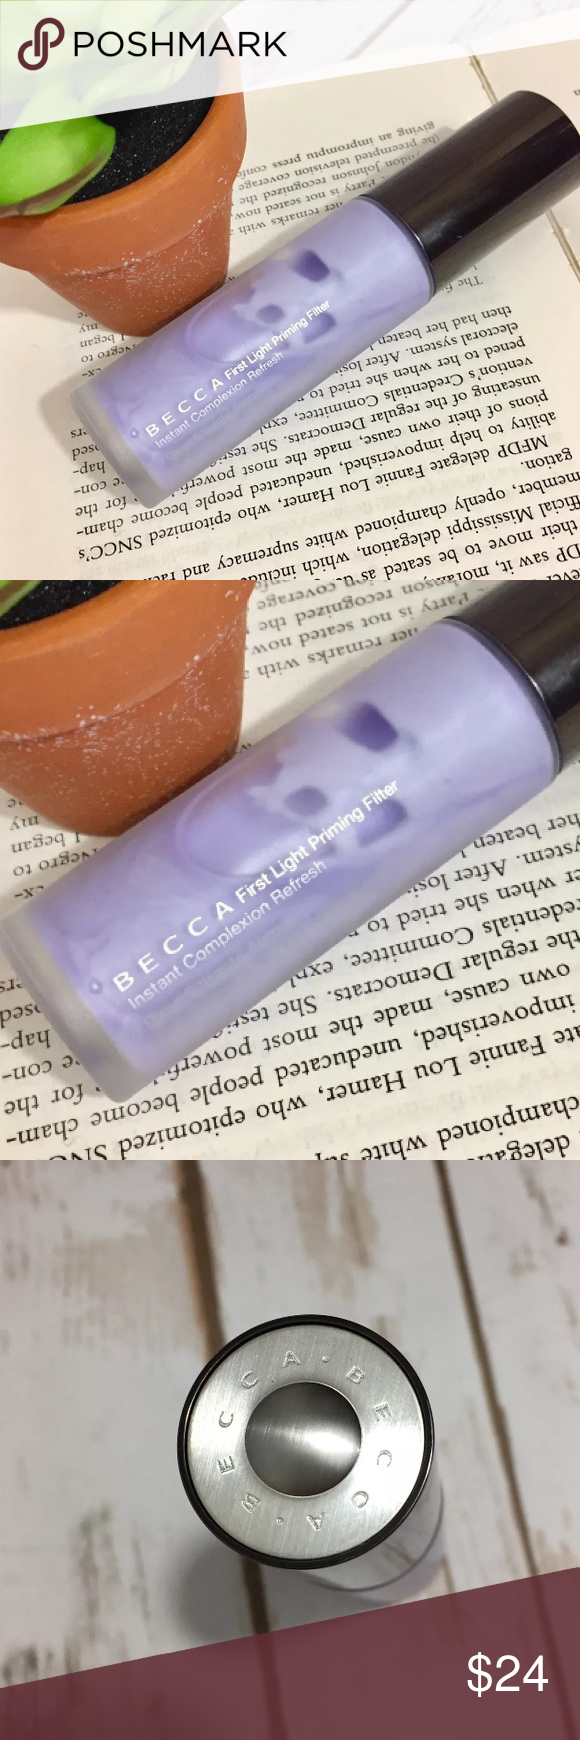 First Light Priming Filter Instant Complexion Refresh by BECCA #20